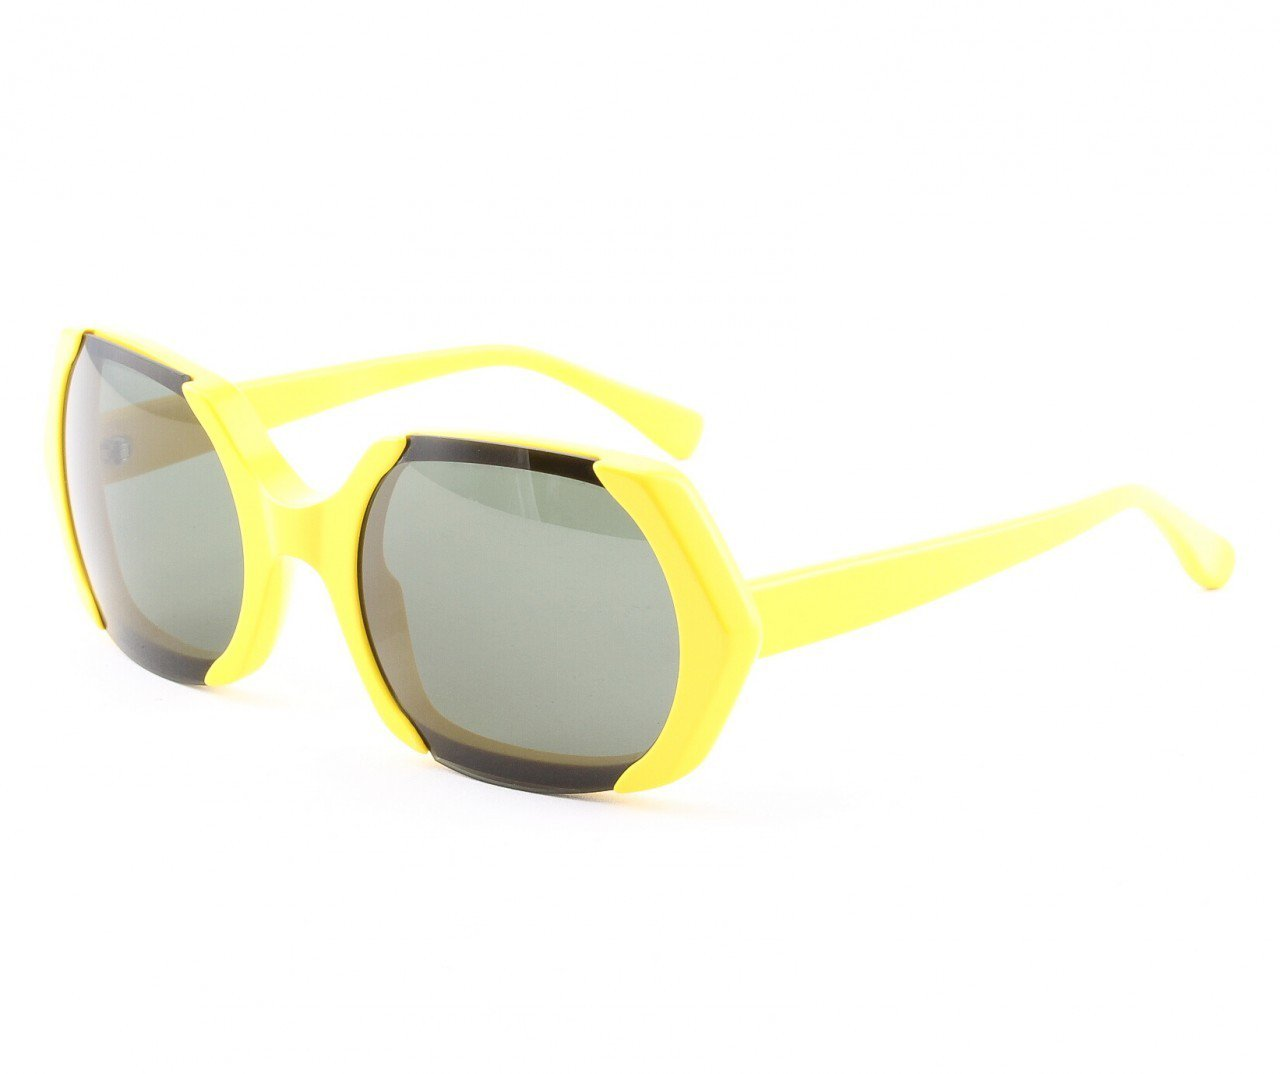 Marni MA223 Sunglasses Col. 03 Hi Tech Yellow Enamel Frame with Gray Lenses